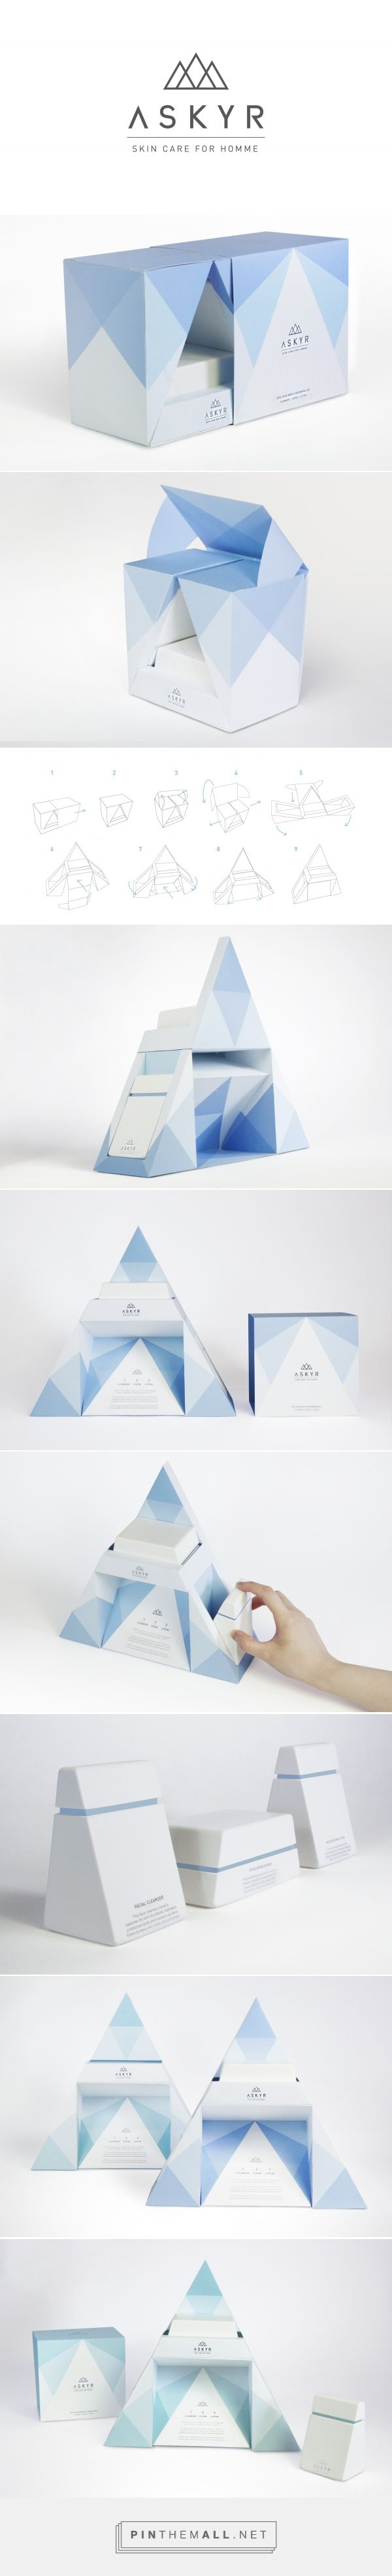 ASKYR is a premium men's skincare brand based in Greenland. The project is for ASKYR gift set packaging including Facial cleanser, Scrub and Lotion. The logo, structure and graphics are inspired by the shape and color of iceberg. From both primary and secondary packaging structure to identity design and overall graphic style, ASKYR is designed in hope of achieving a comprehensive and consistent brand gestalt.